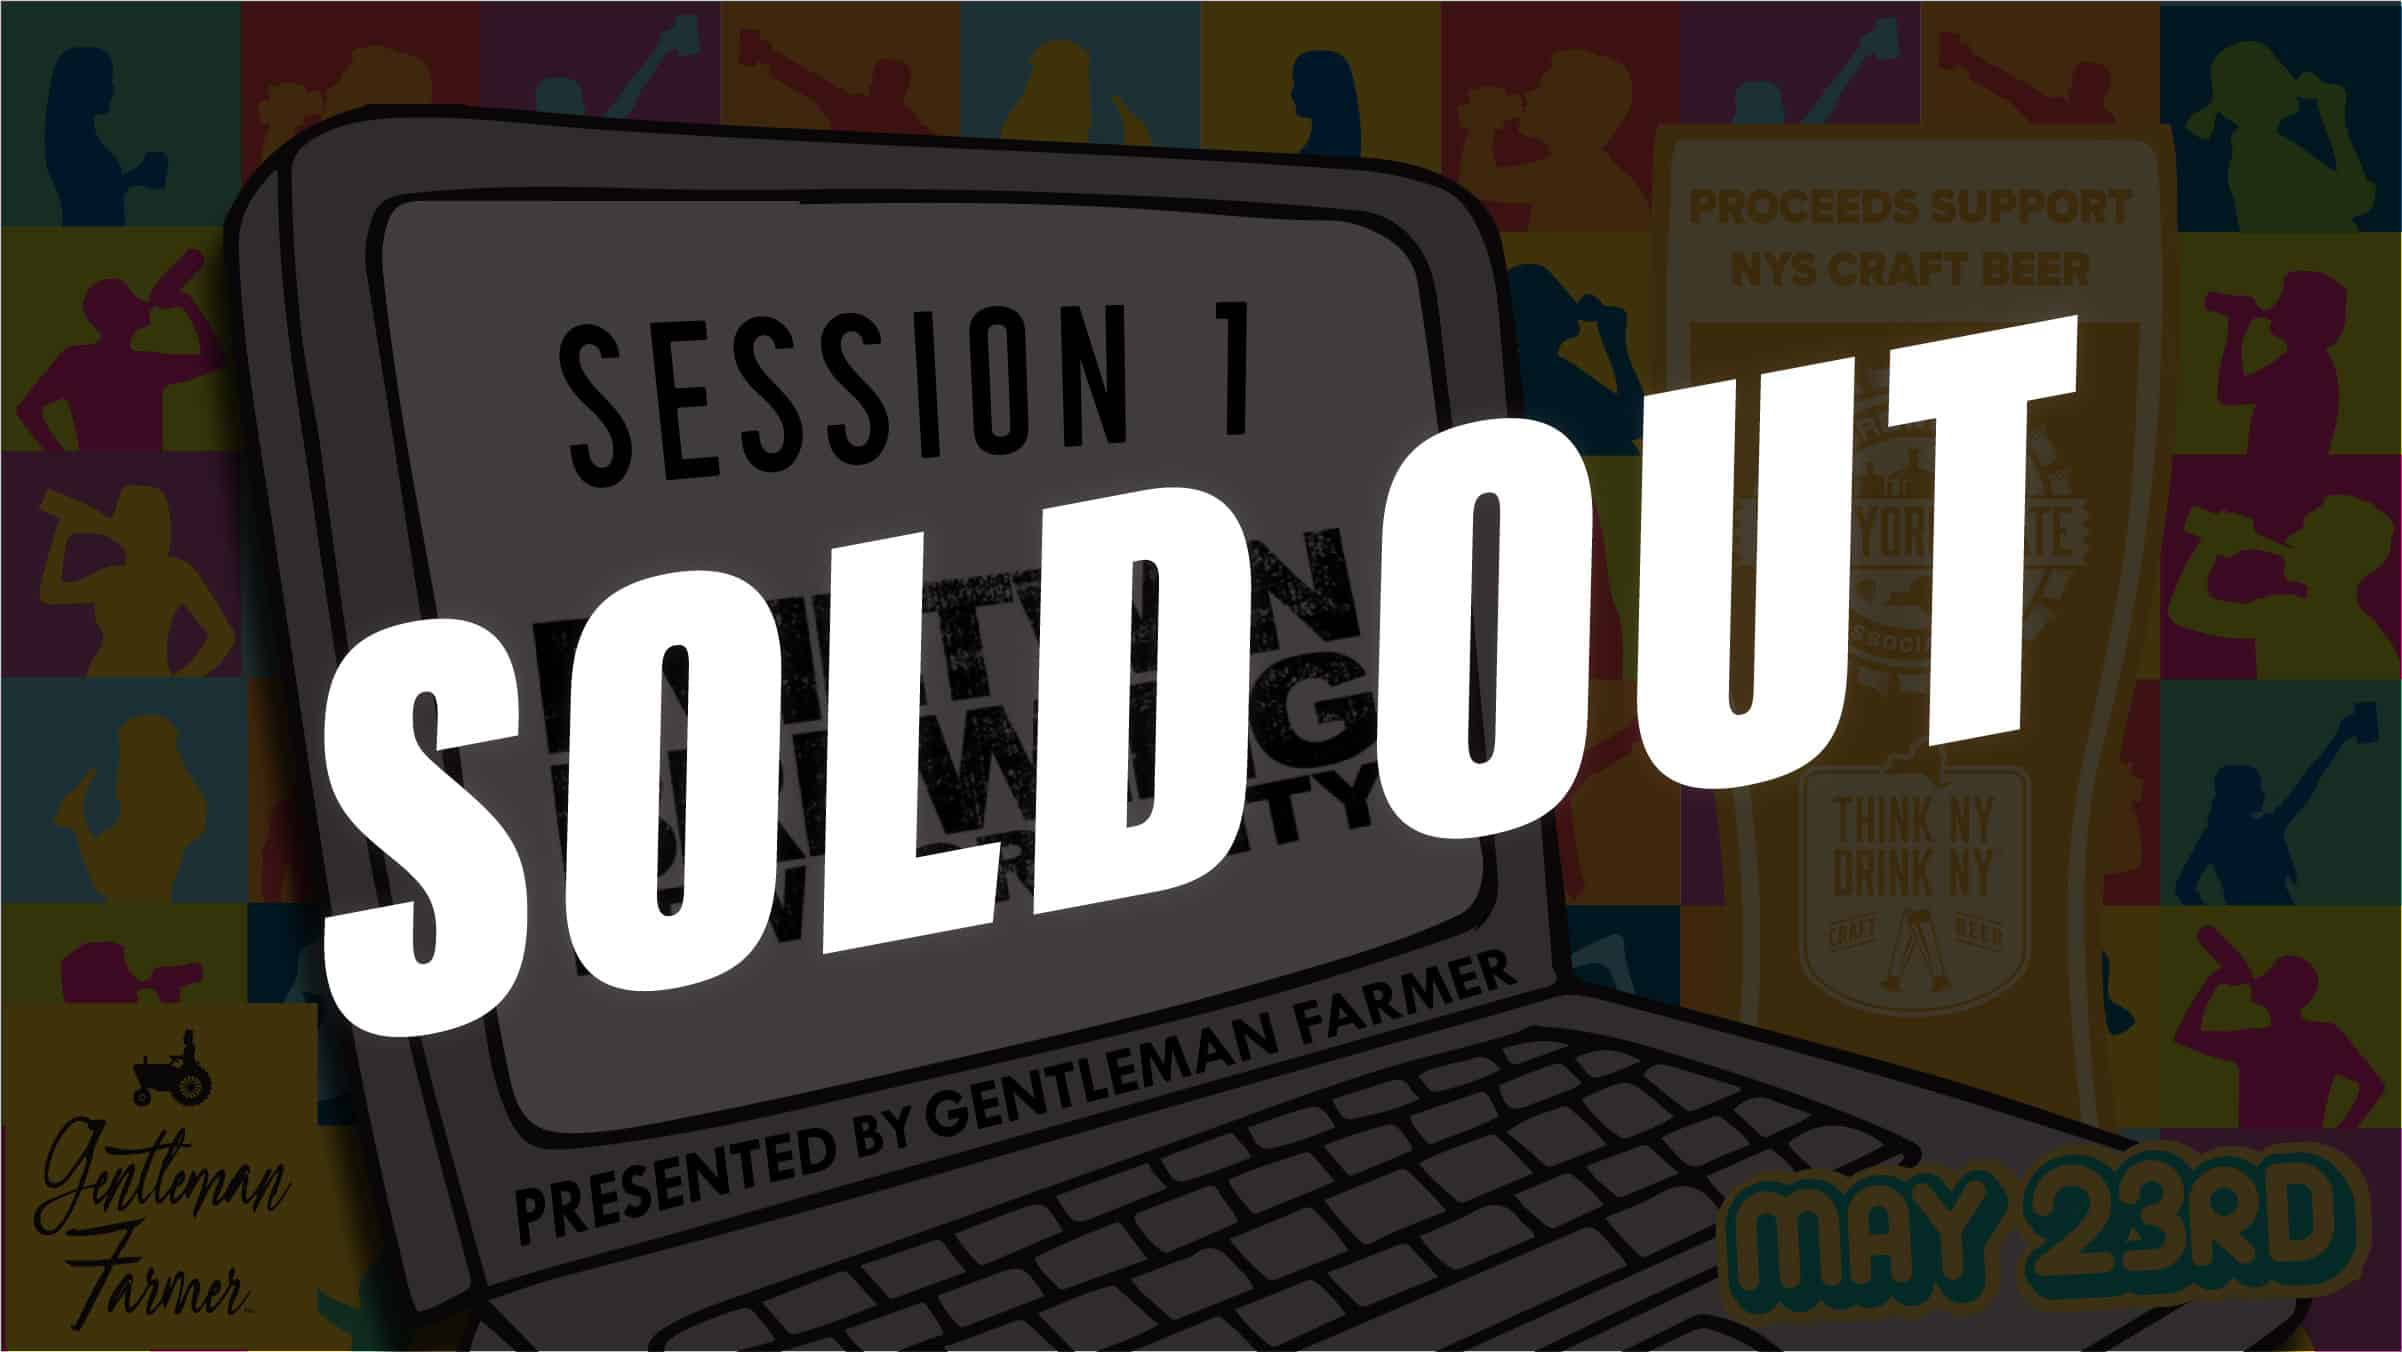 VTE_Session 1_16x9_SOLD OUT